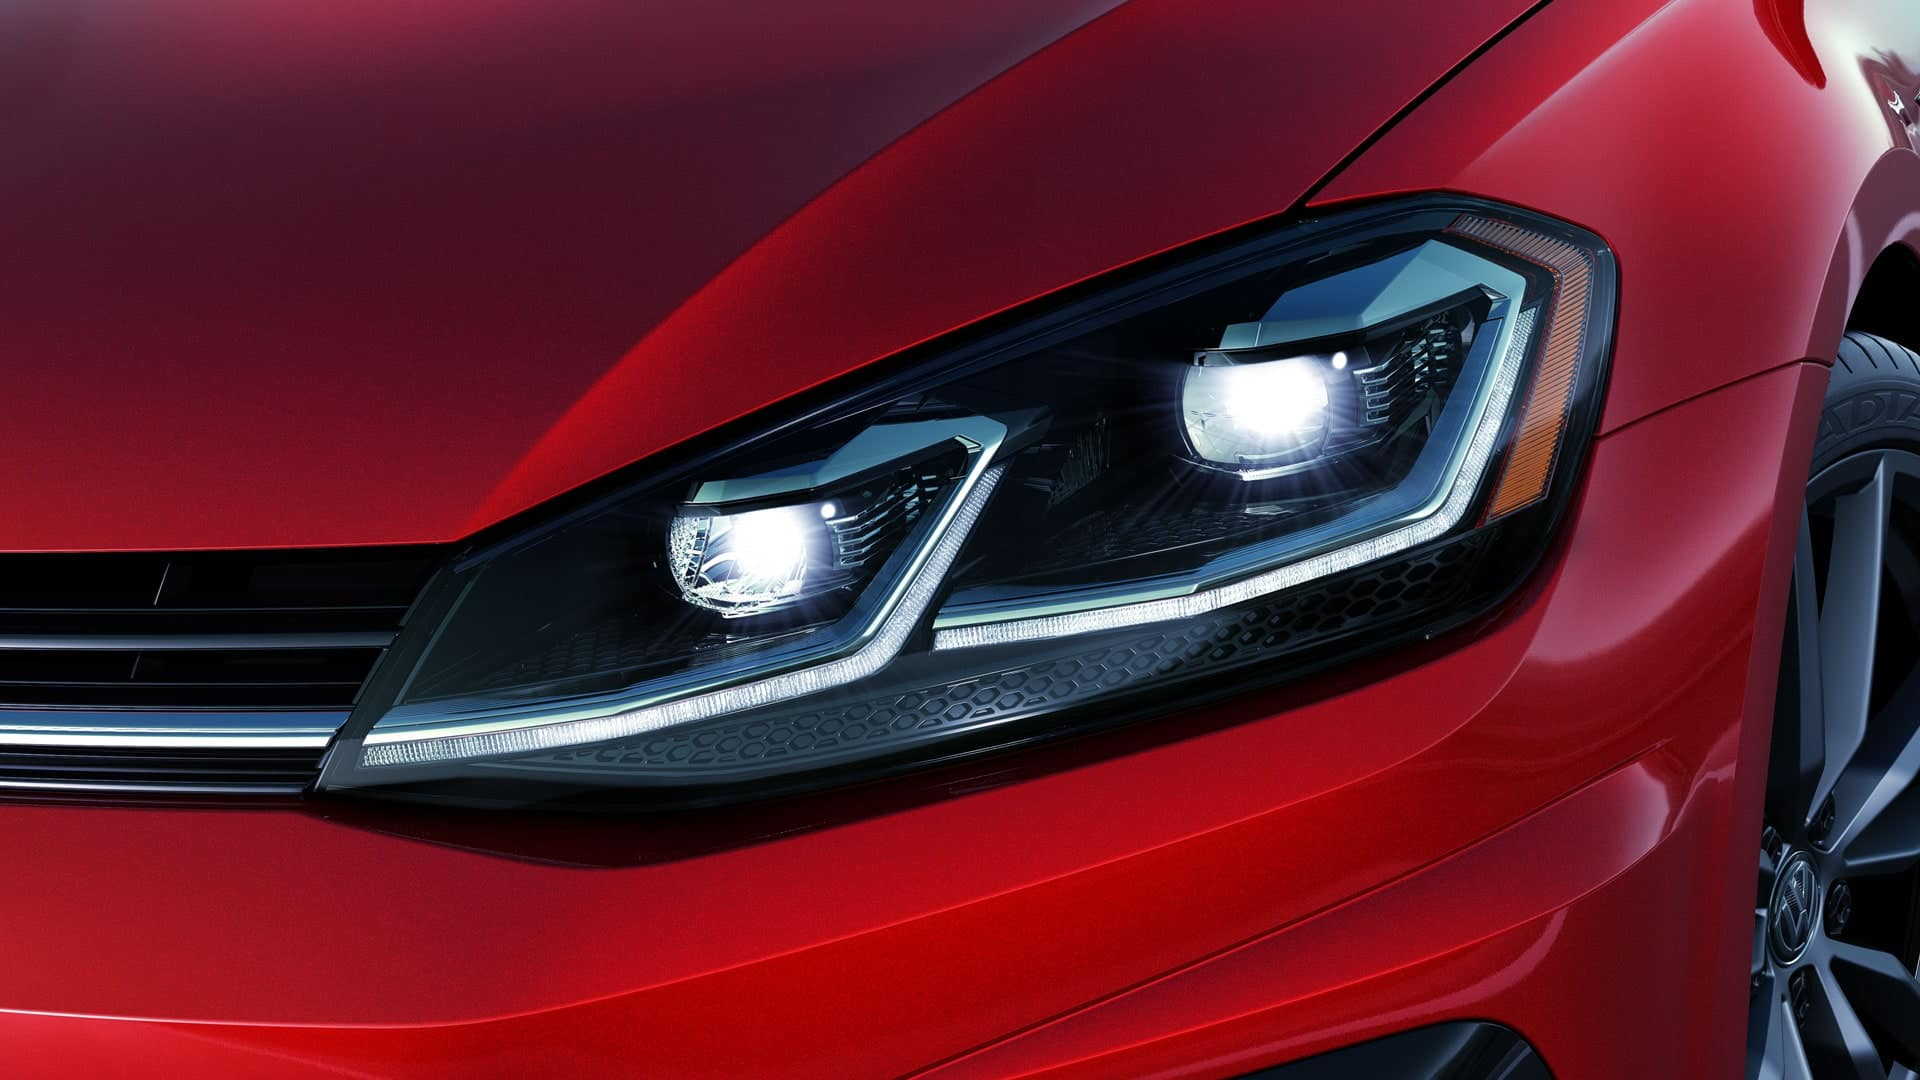 2019 VW Golf R LED headlights